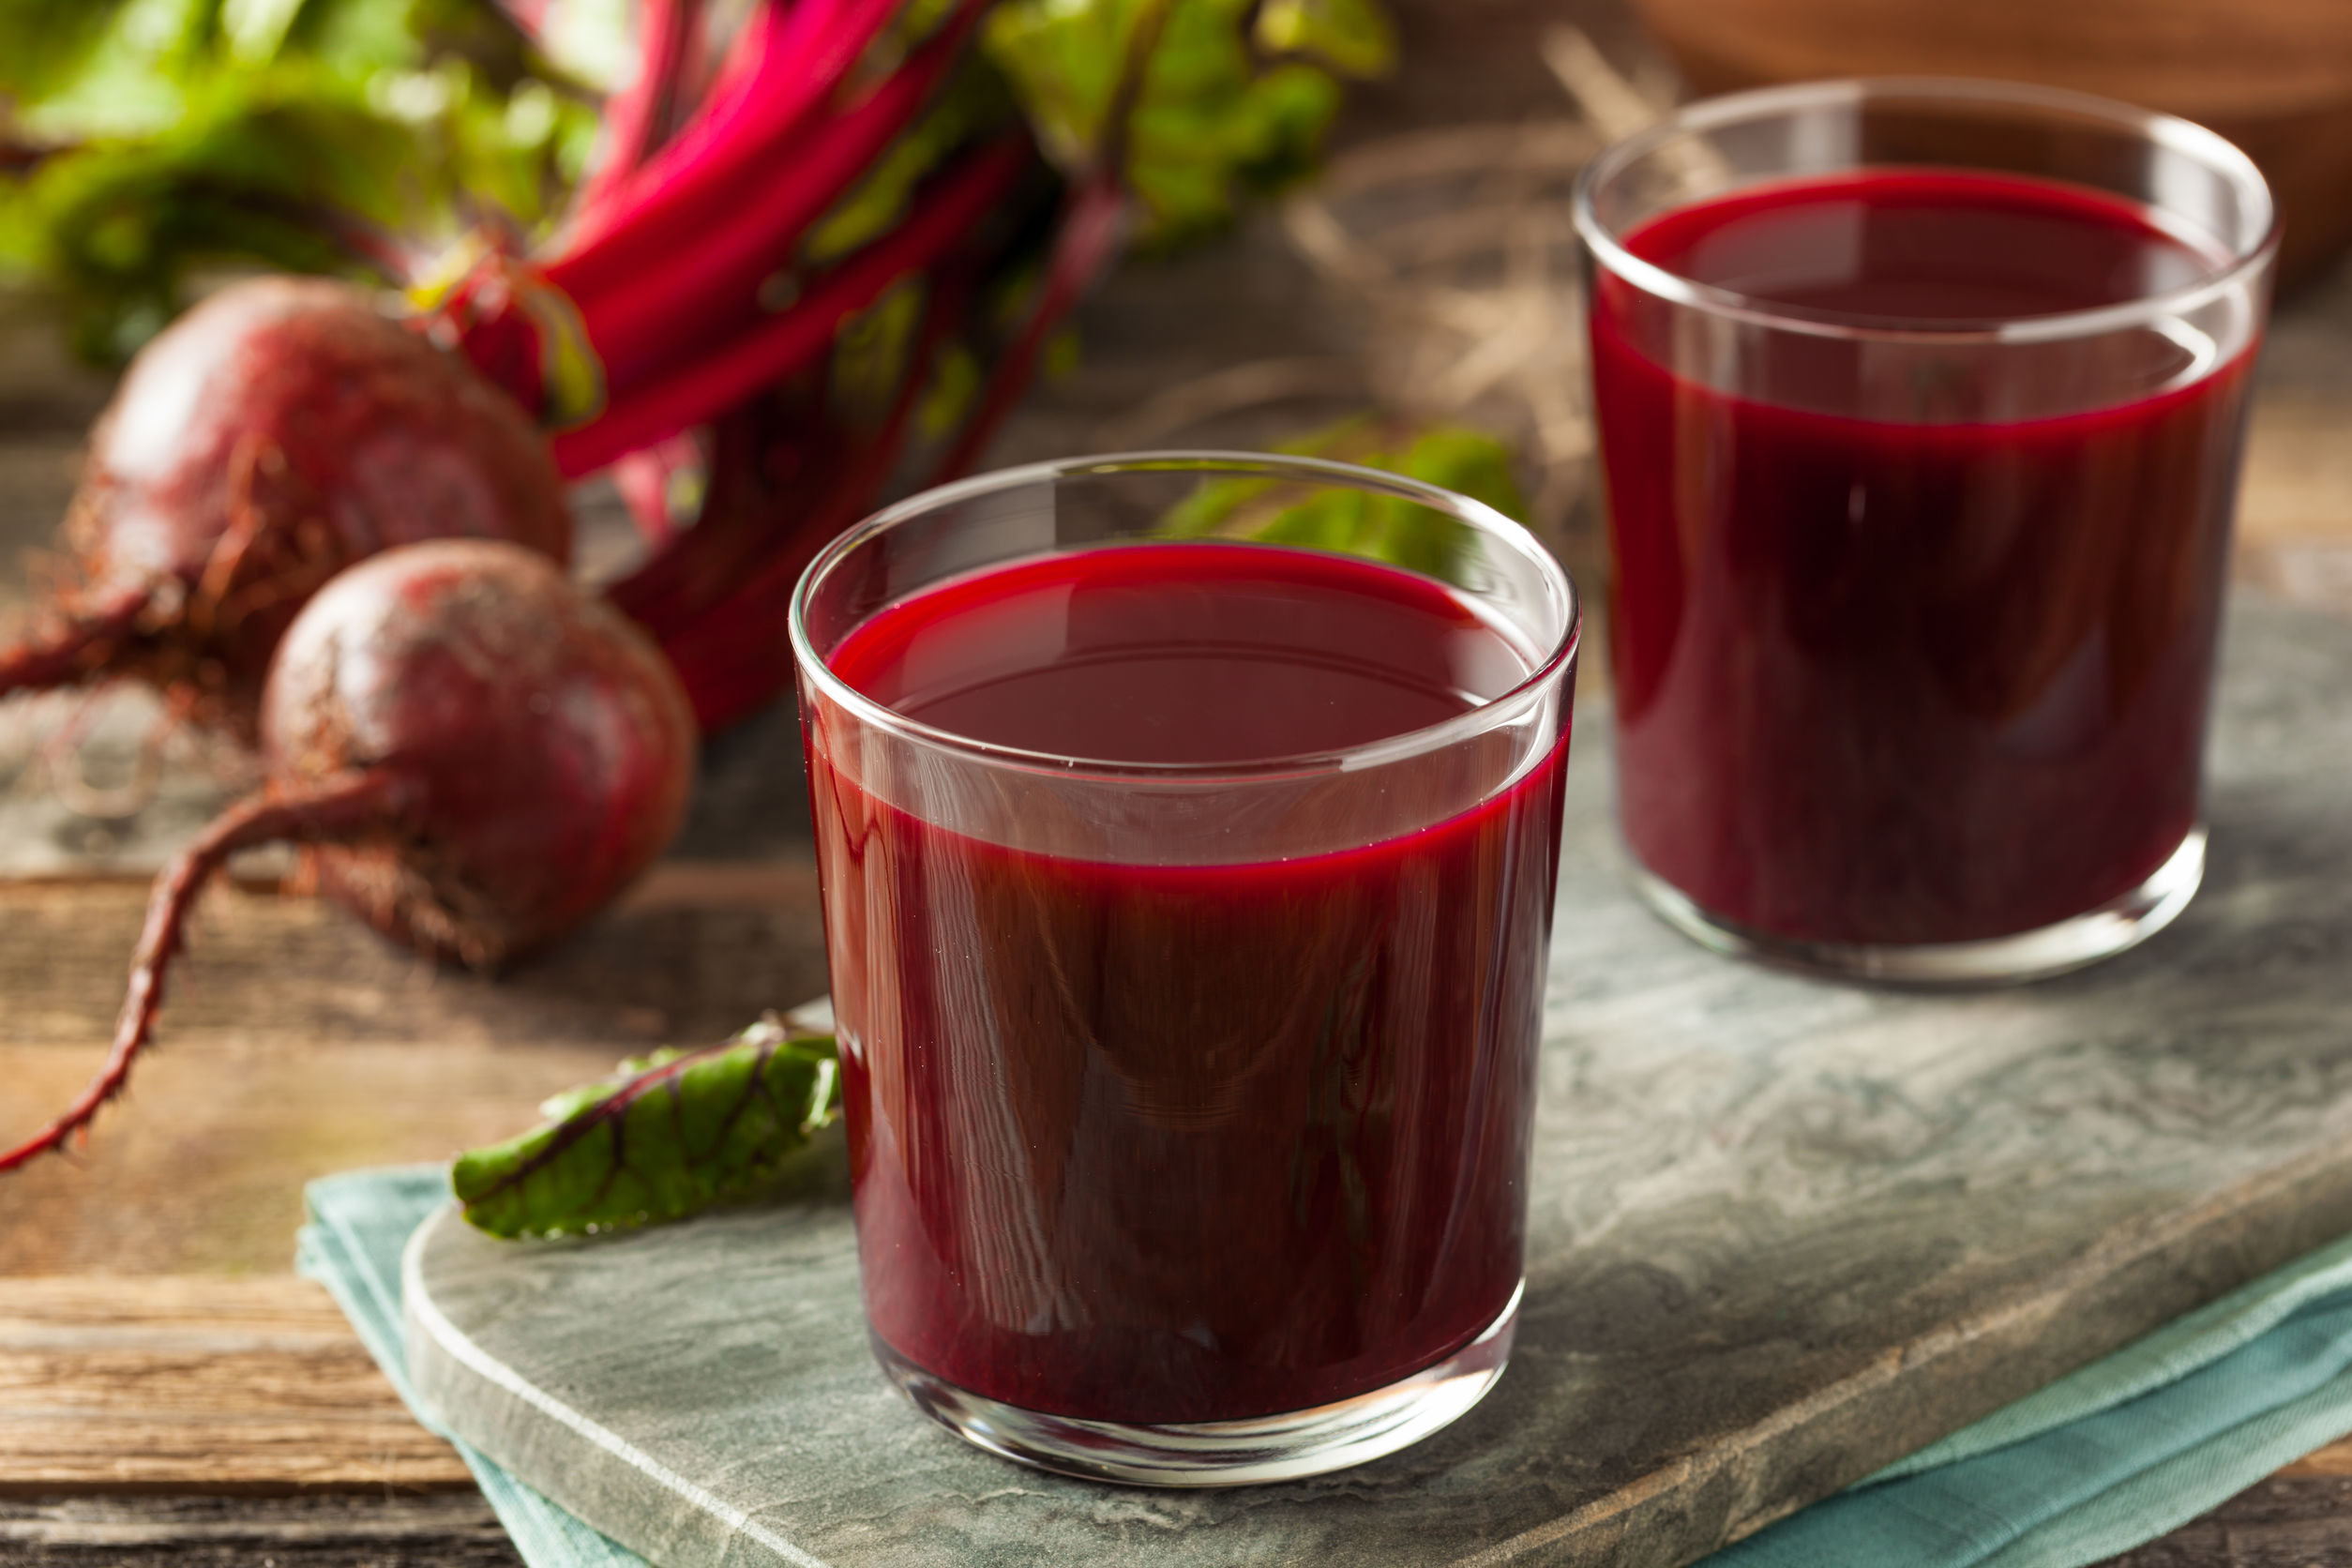 raw organic beet juice in a glass